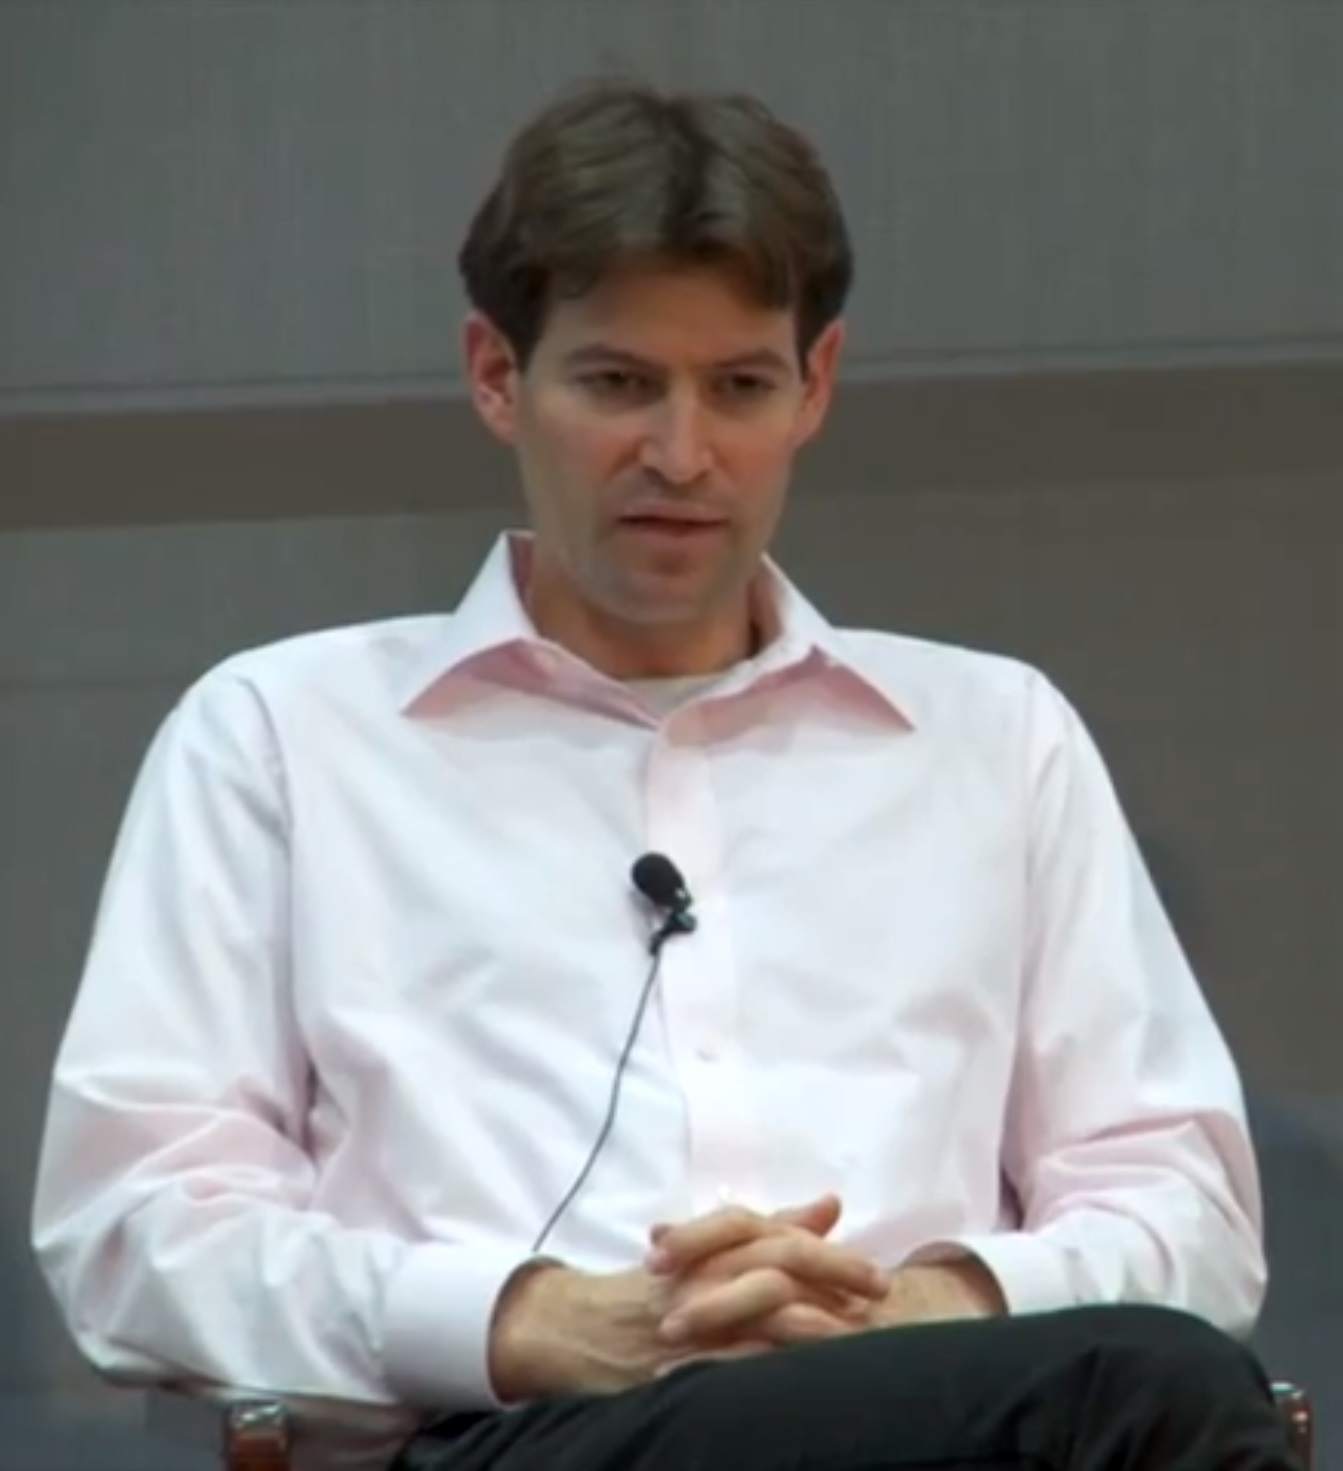 Diffenbaugh speaks at an environment and climate change panel discussion at Stanford University in 2014